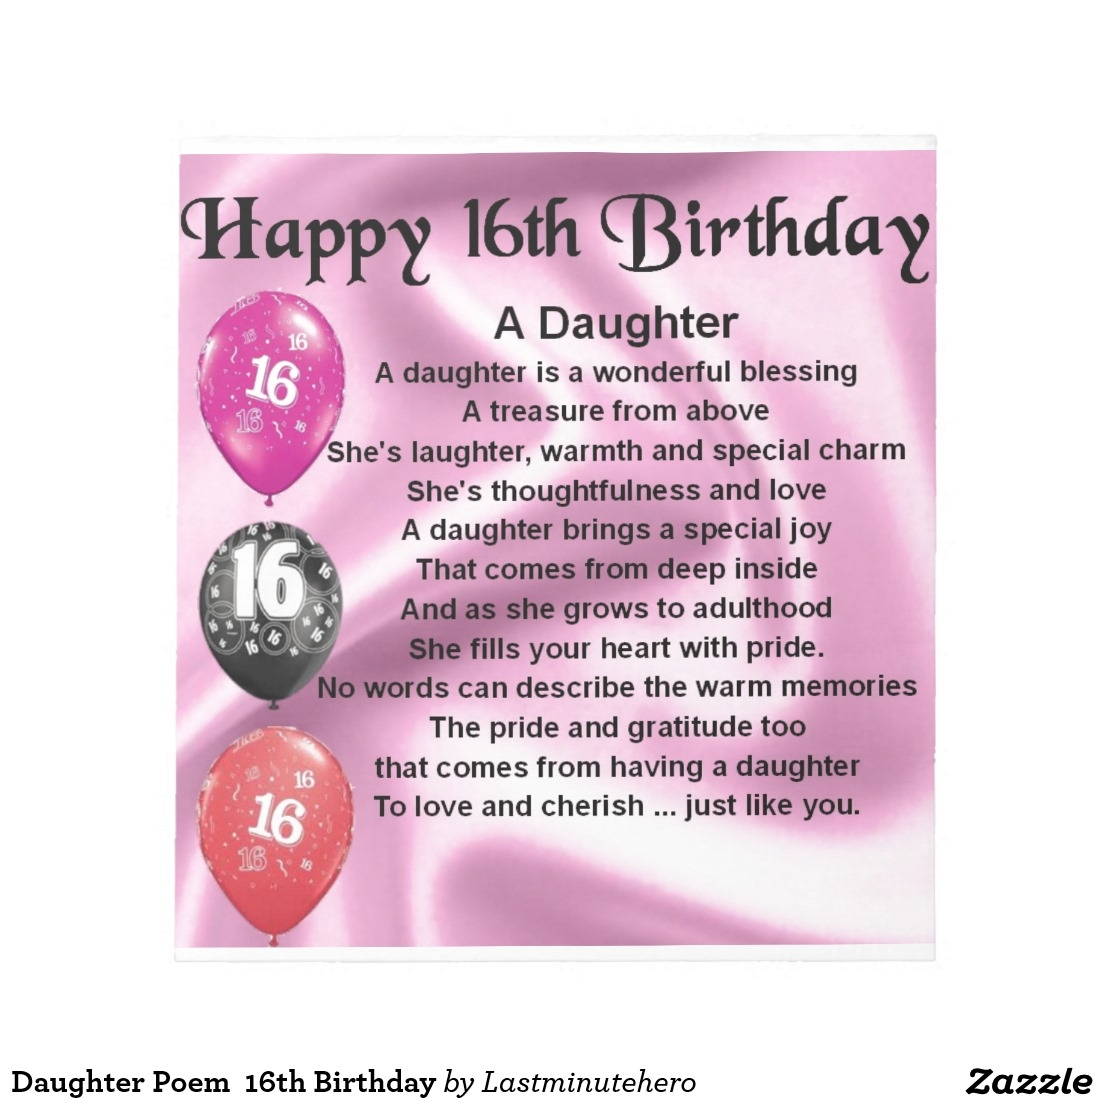 birthday wishes daughter poem ; amusing-daughter-poem-18th-birthday-coaster-happy-birthday-wishes-intended-for-happy-16th-birthday-quotes-design-ideas